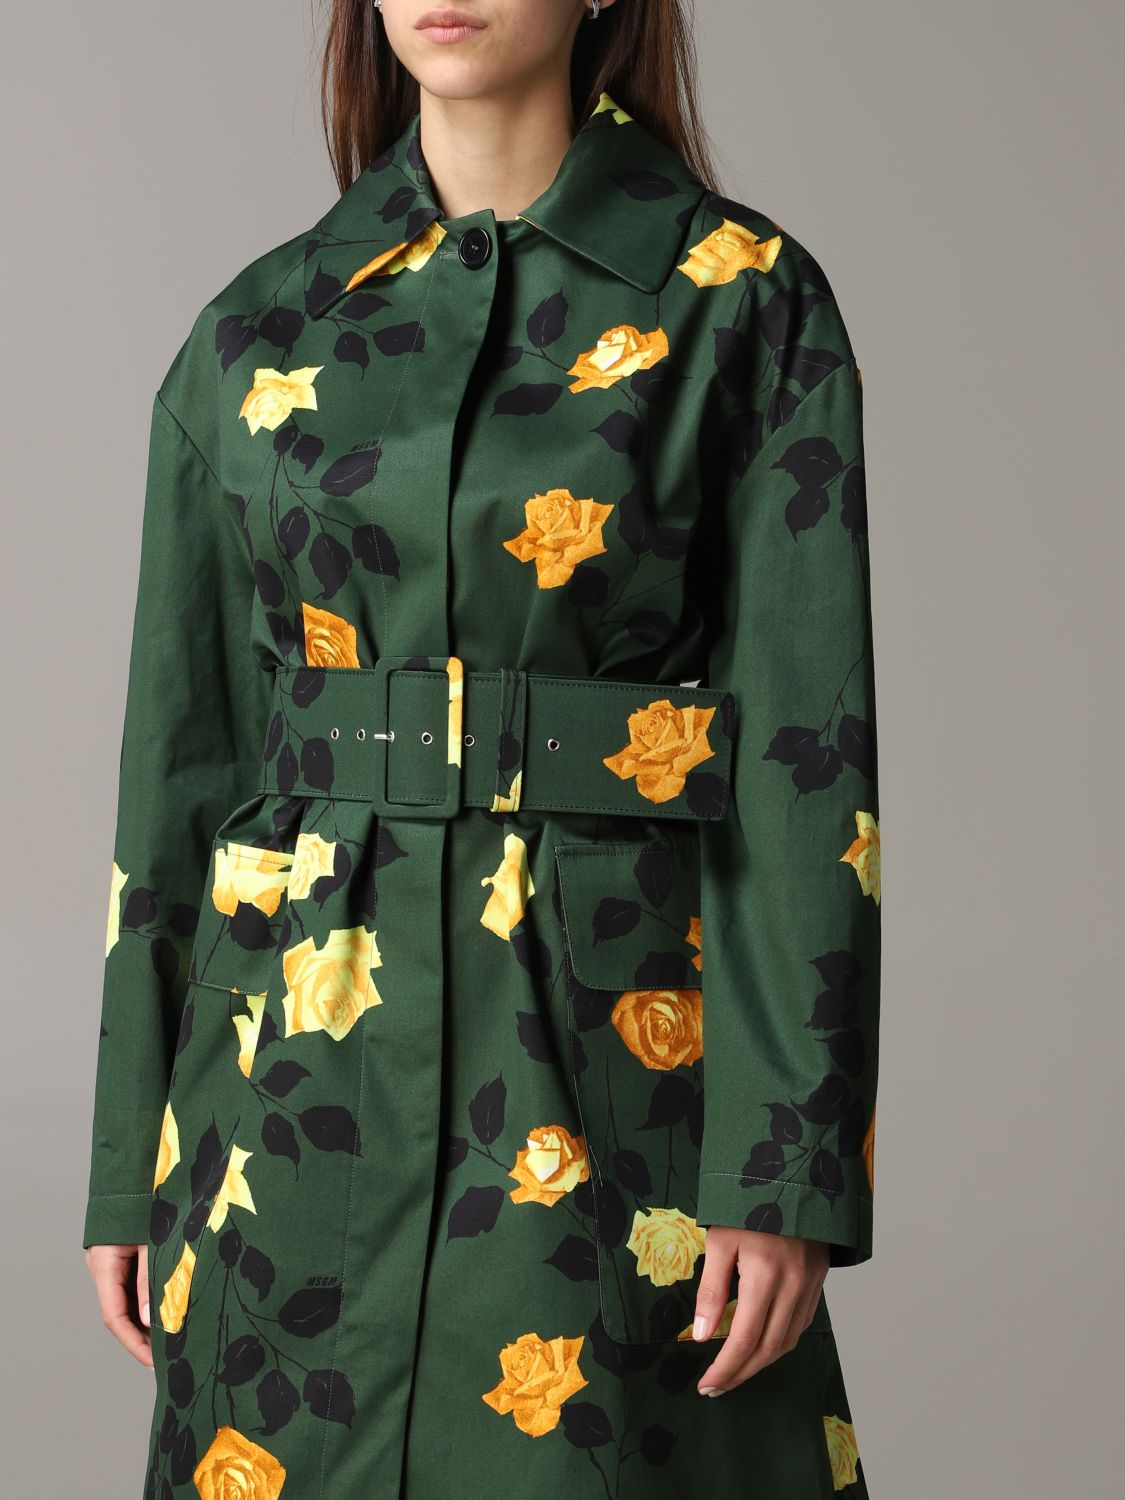 Msgm coat with floral pattern military 5